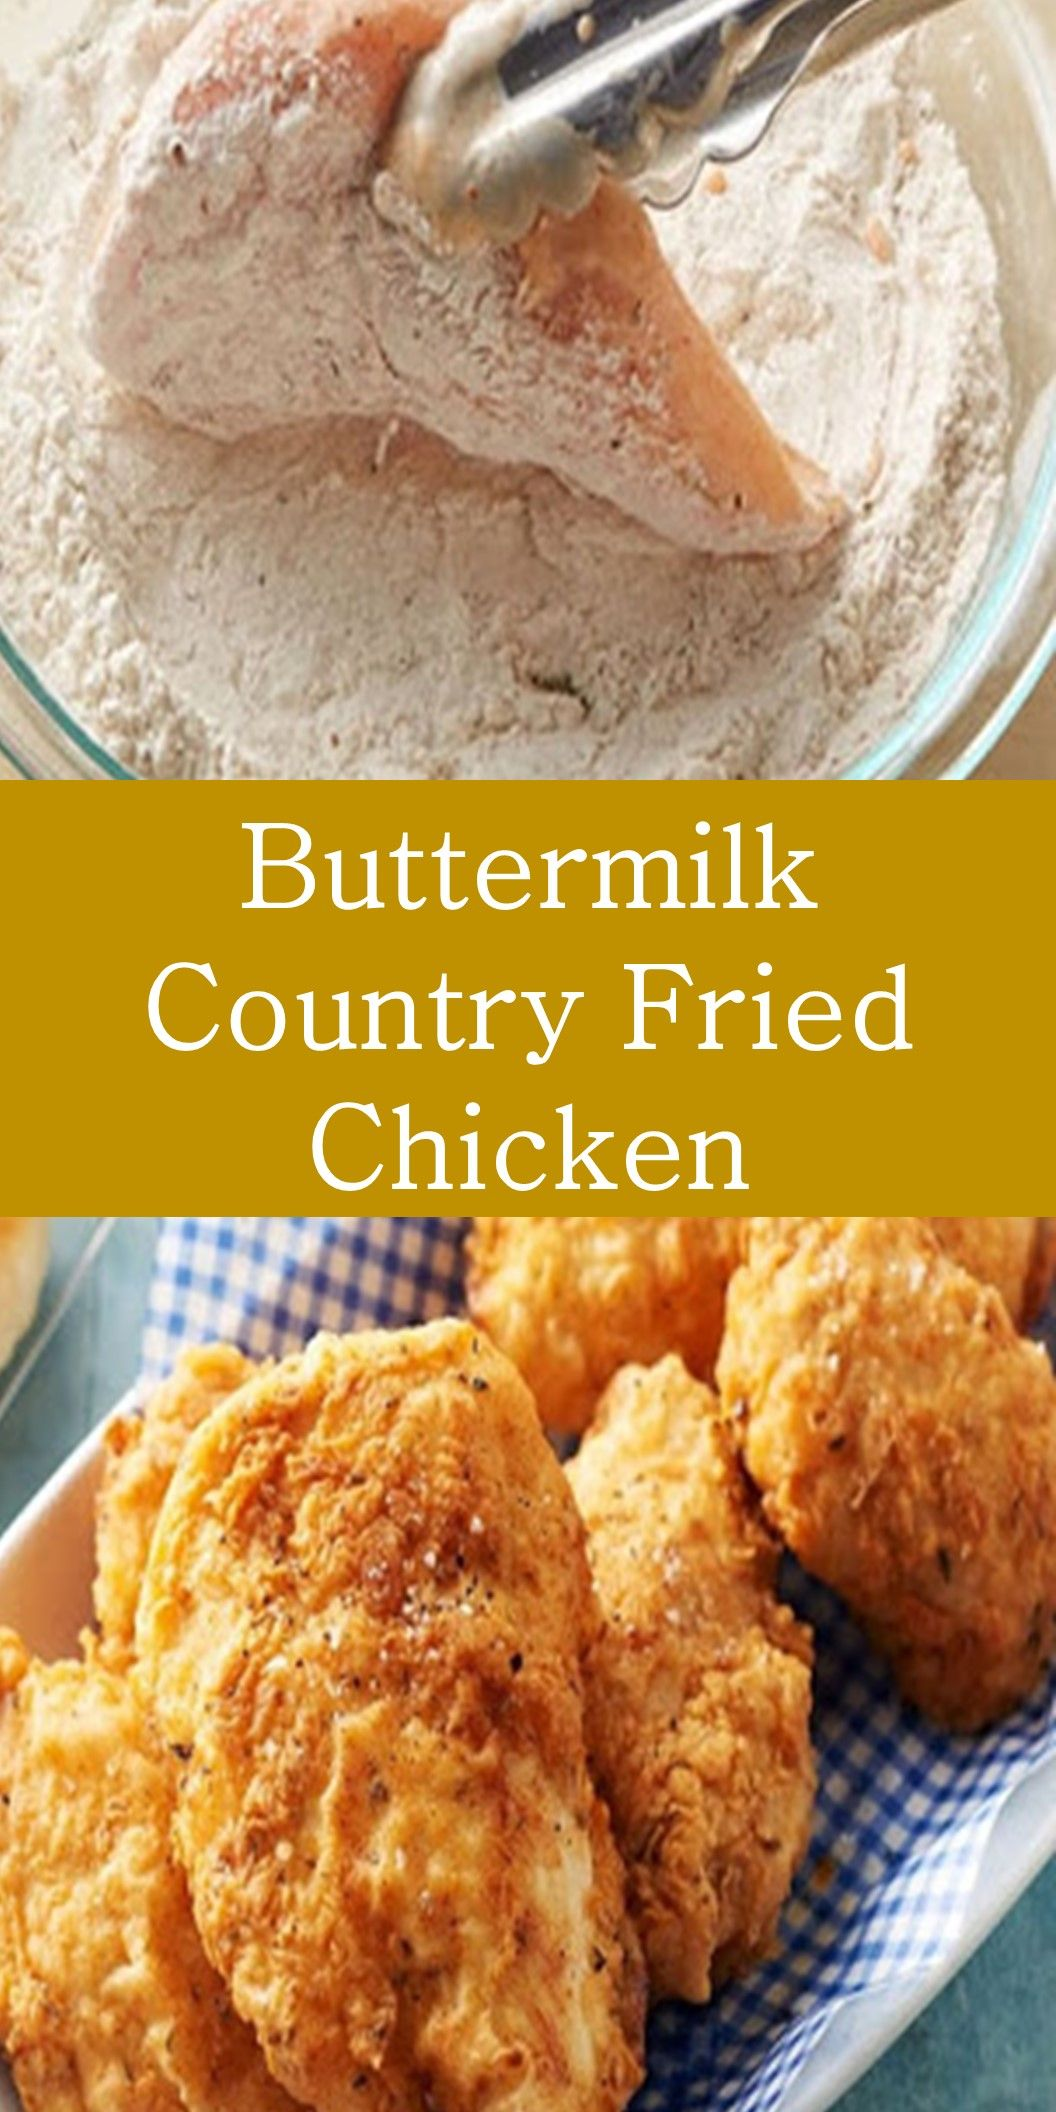 Buttermilk Country Fried Chicken Buttermilk Fried Chicken In 2020 Country Fried Chicken Food Fried Chicken Recipes